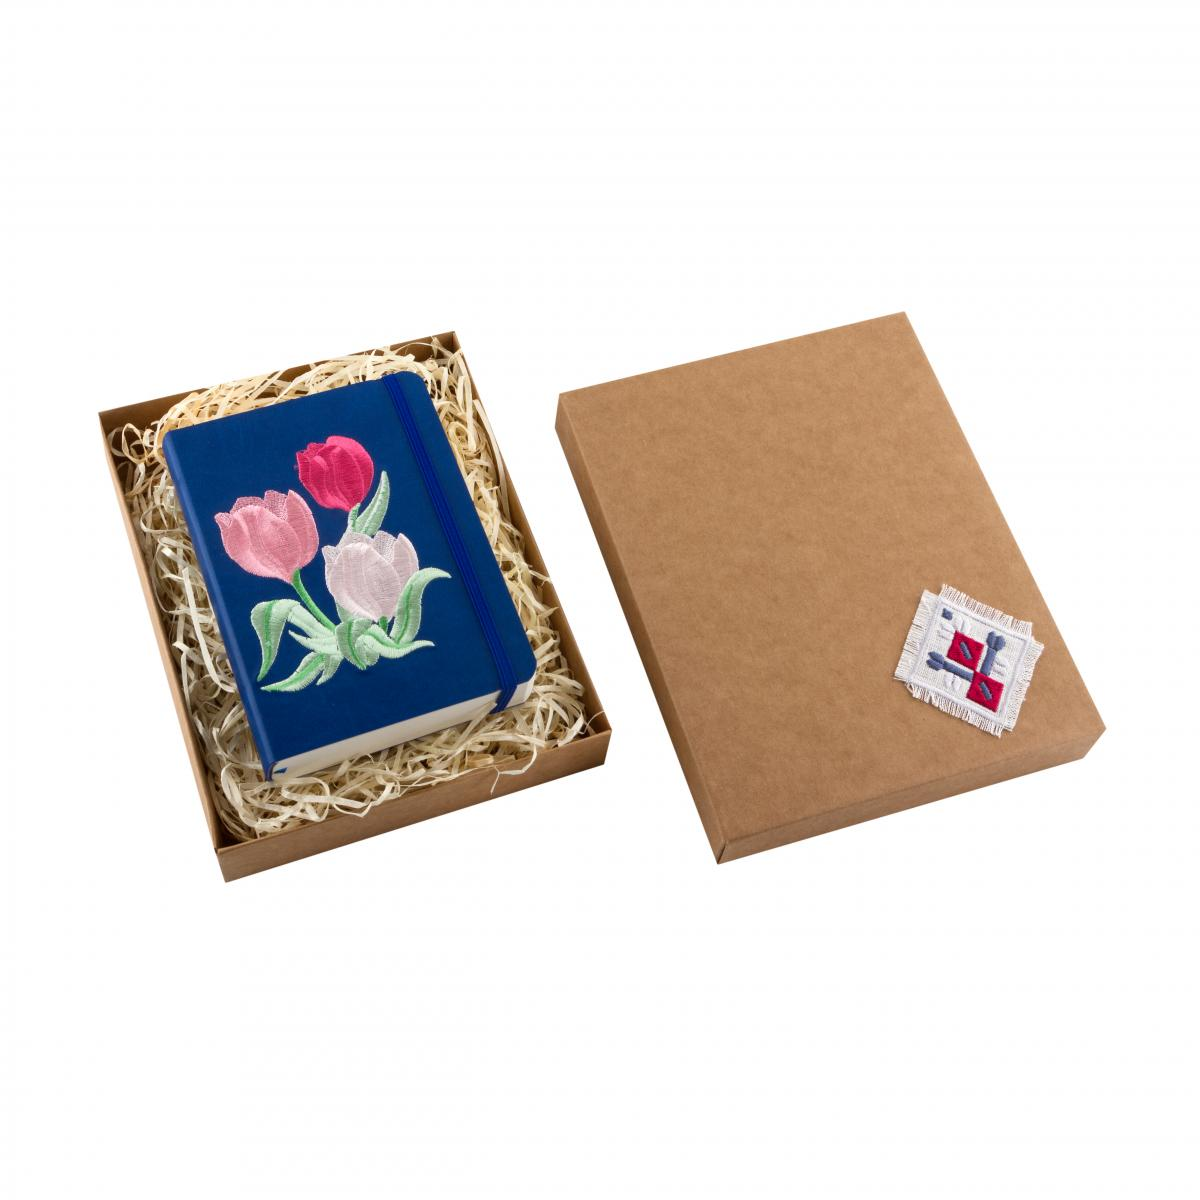 "Eco-leather notebook with embroidery ""Tulips"", dark blue. Photo №3. 